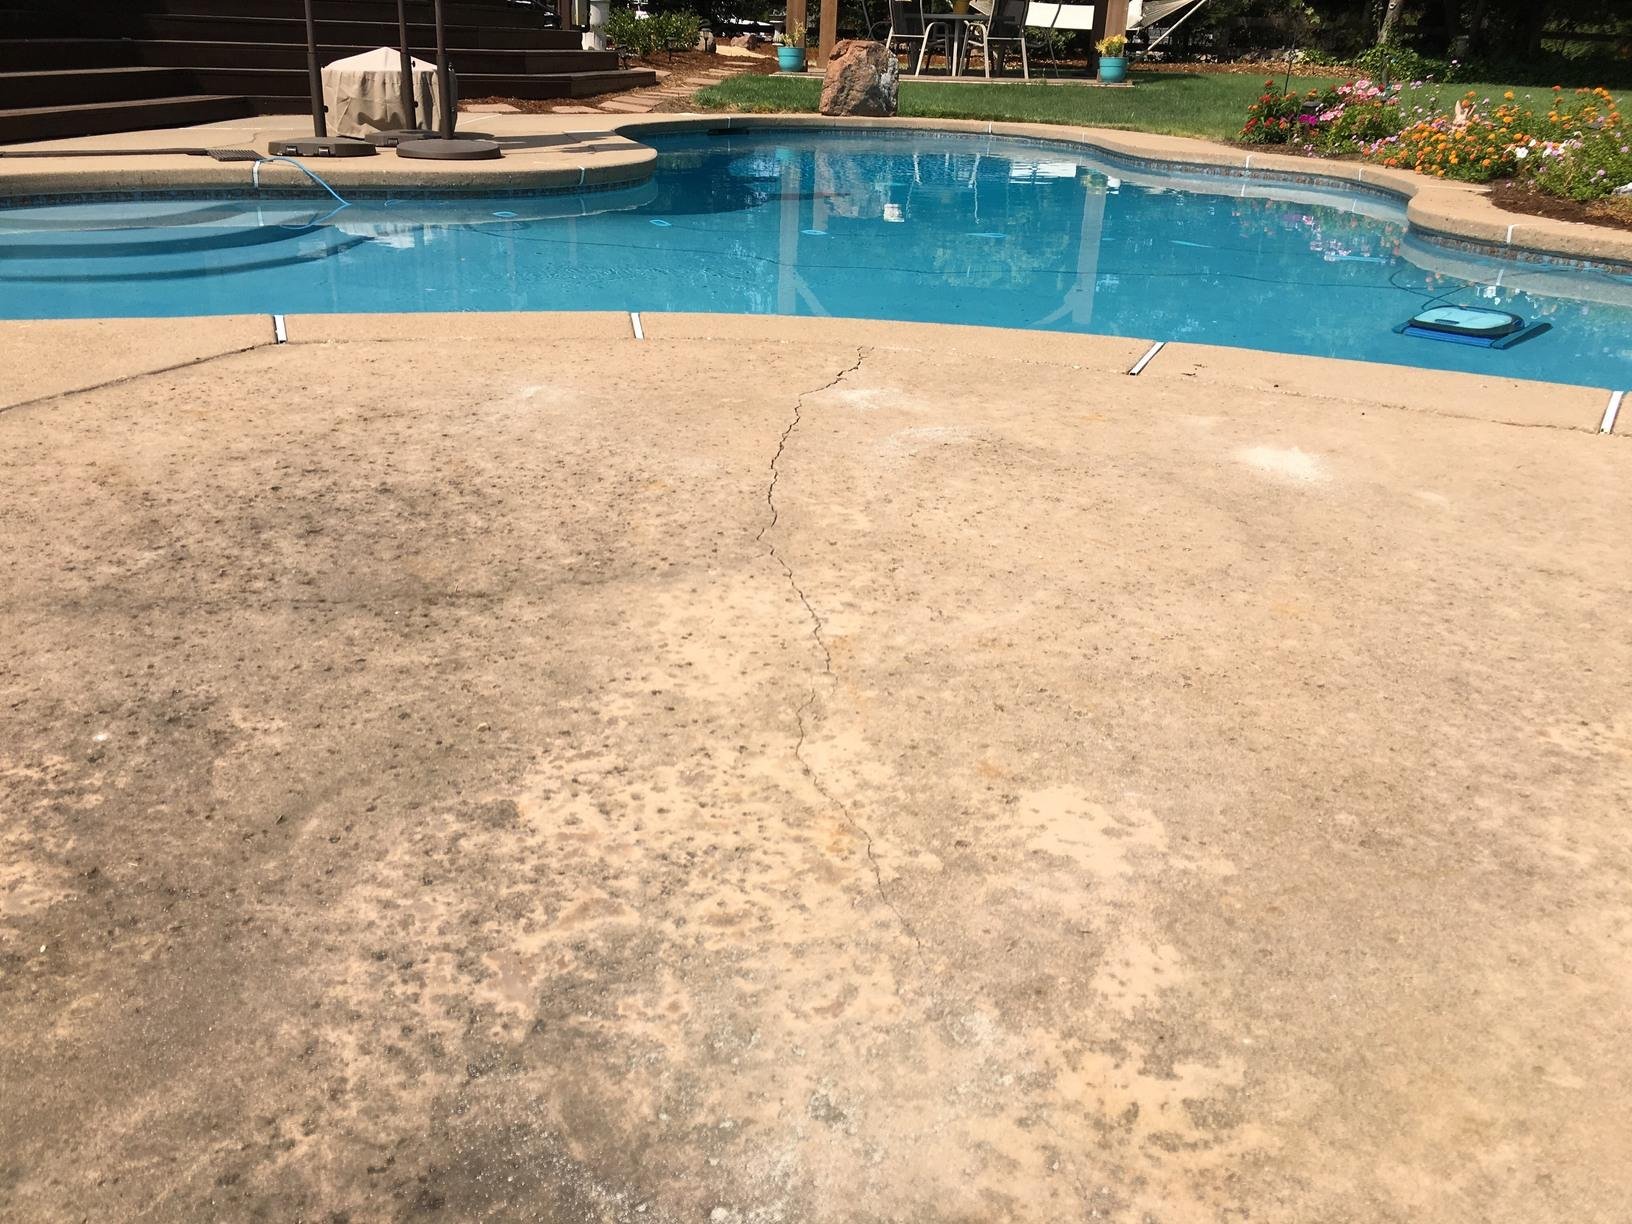 Pool Deck Polylevel Lift in Granite Bay, CA - After Photo